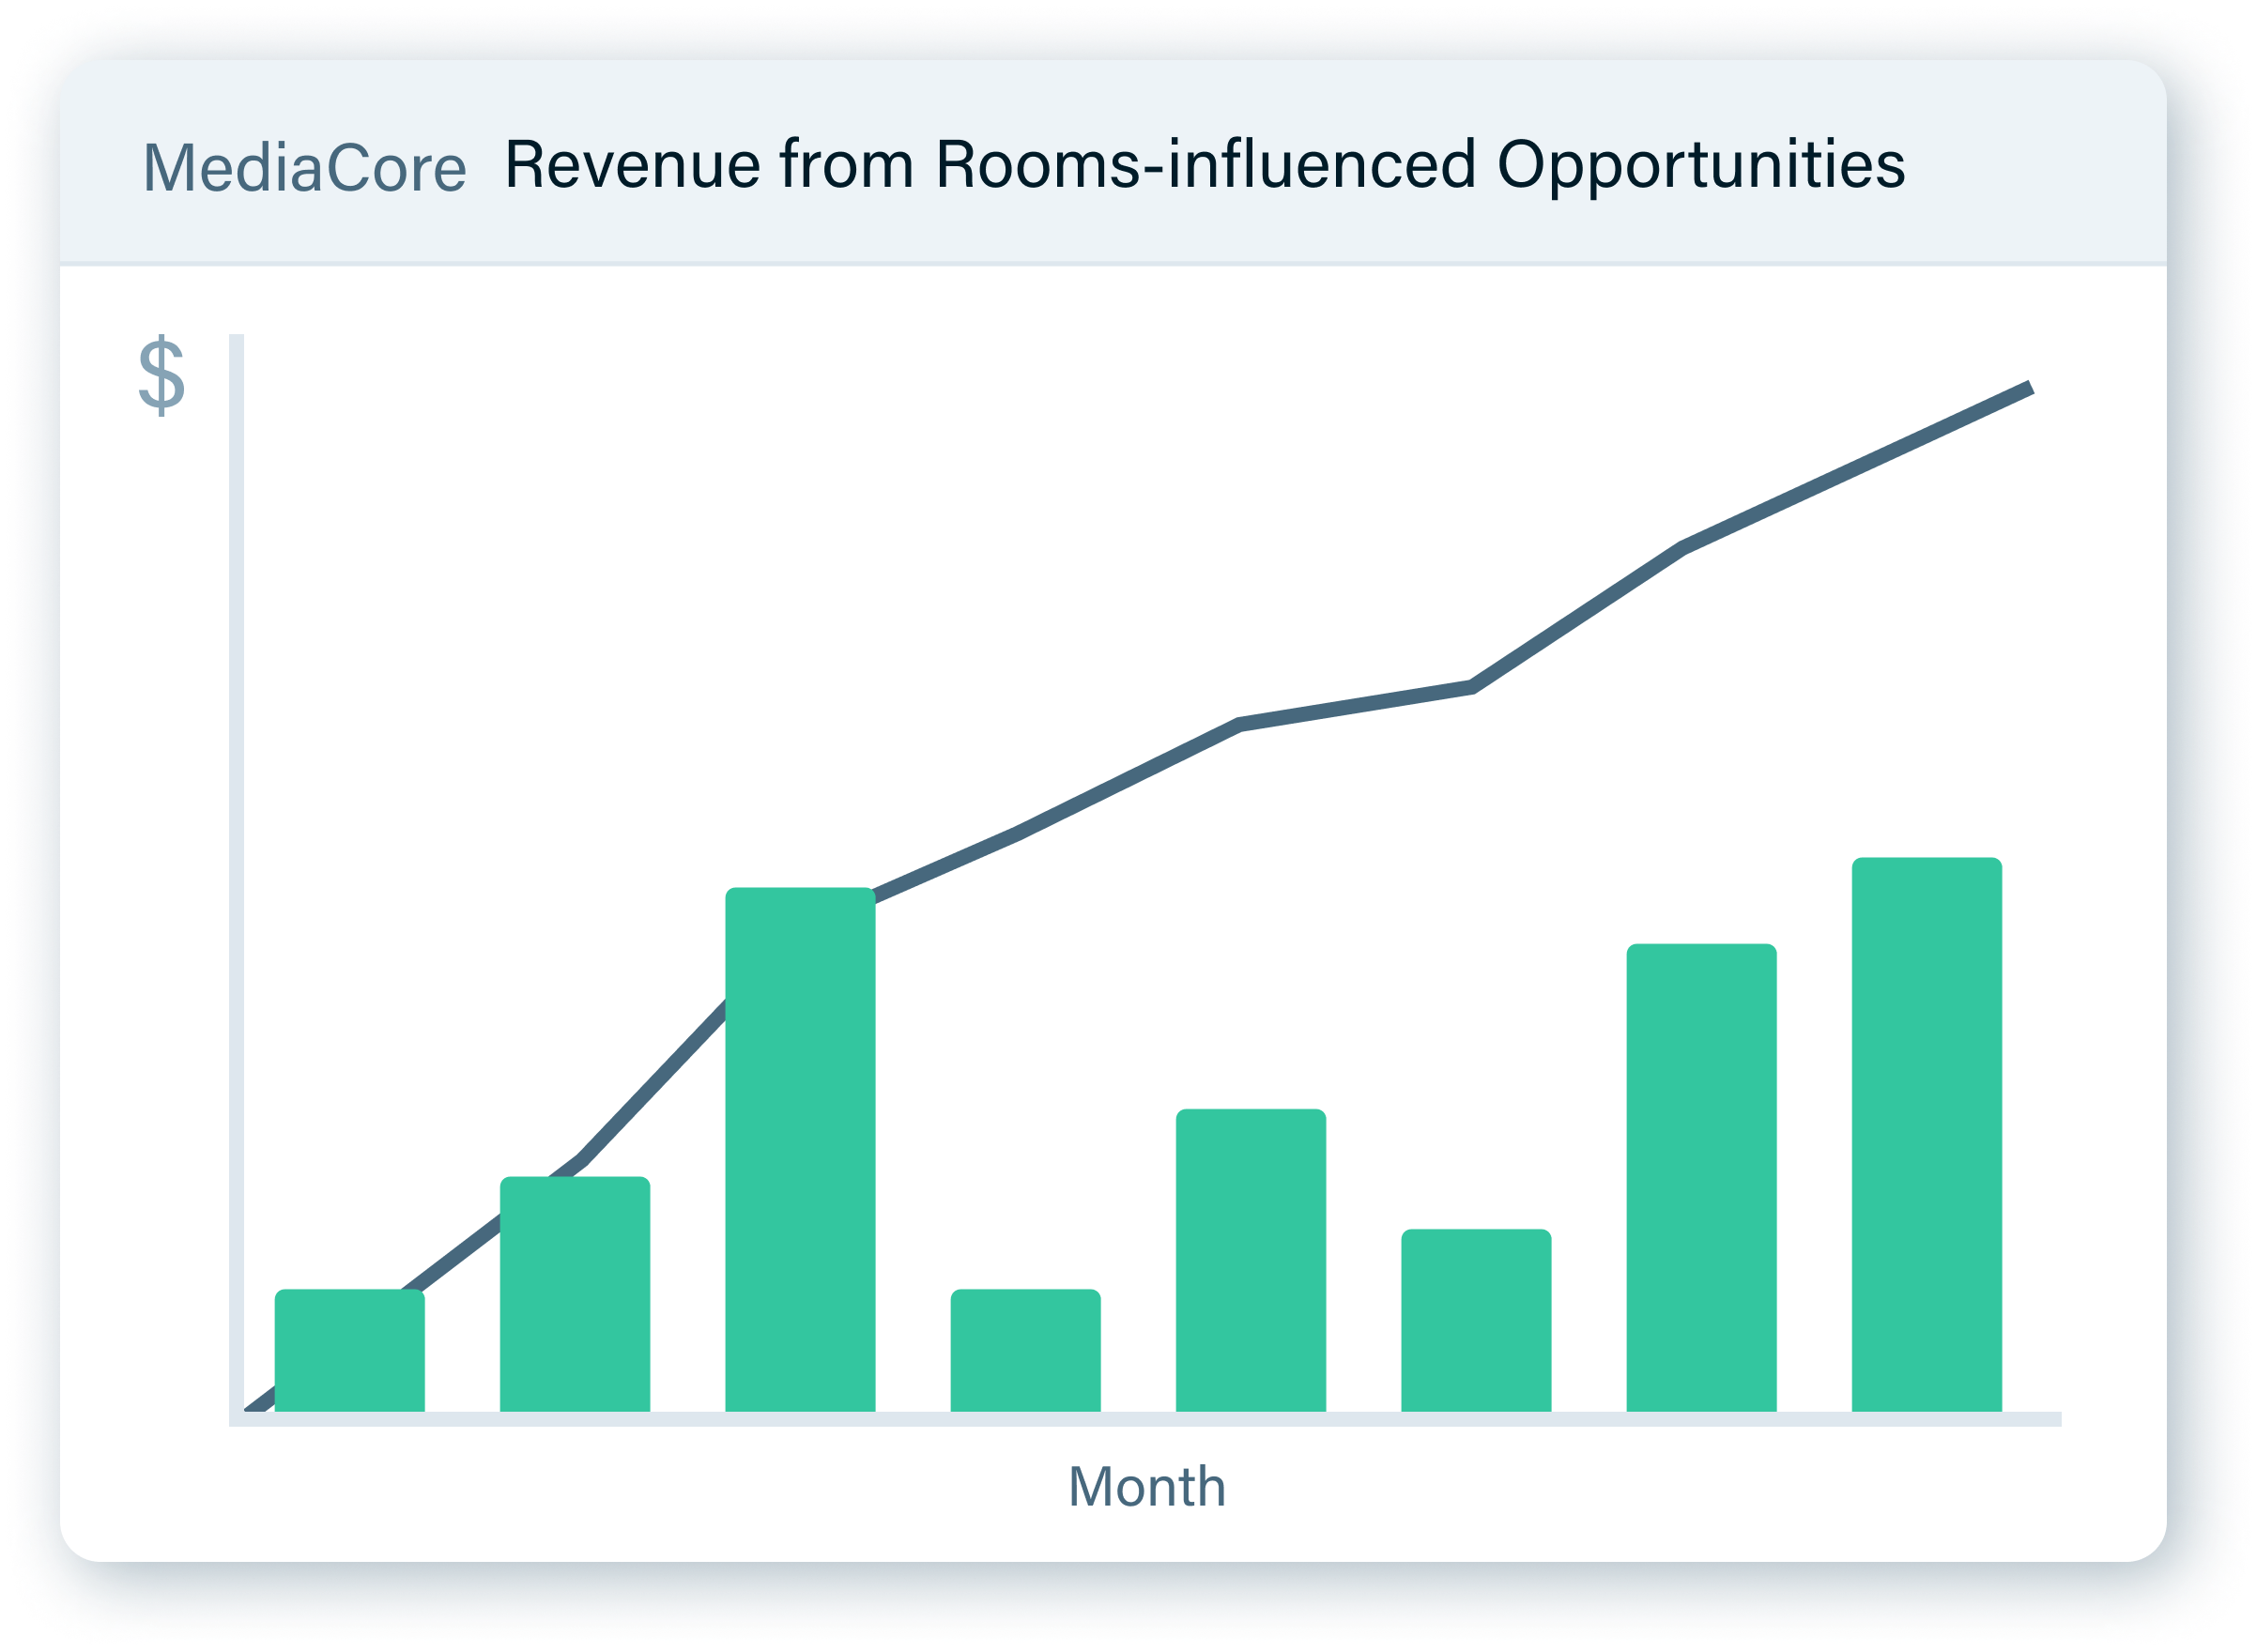 A chart showing revenue influenced by Rooms